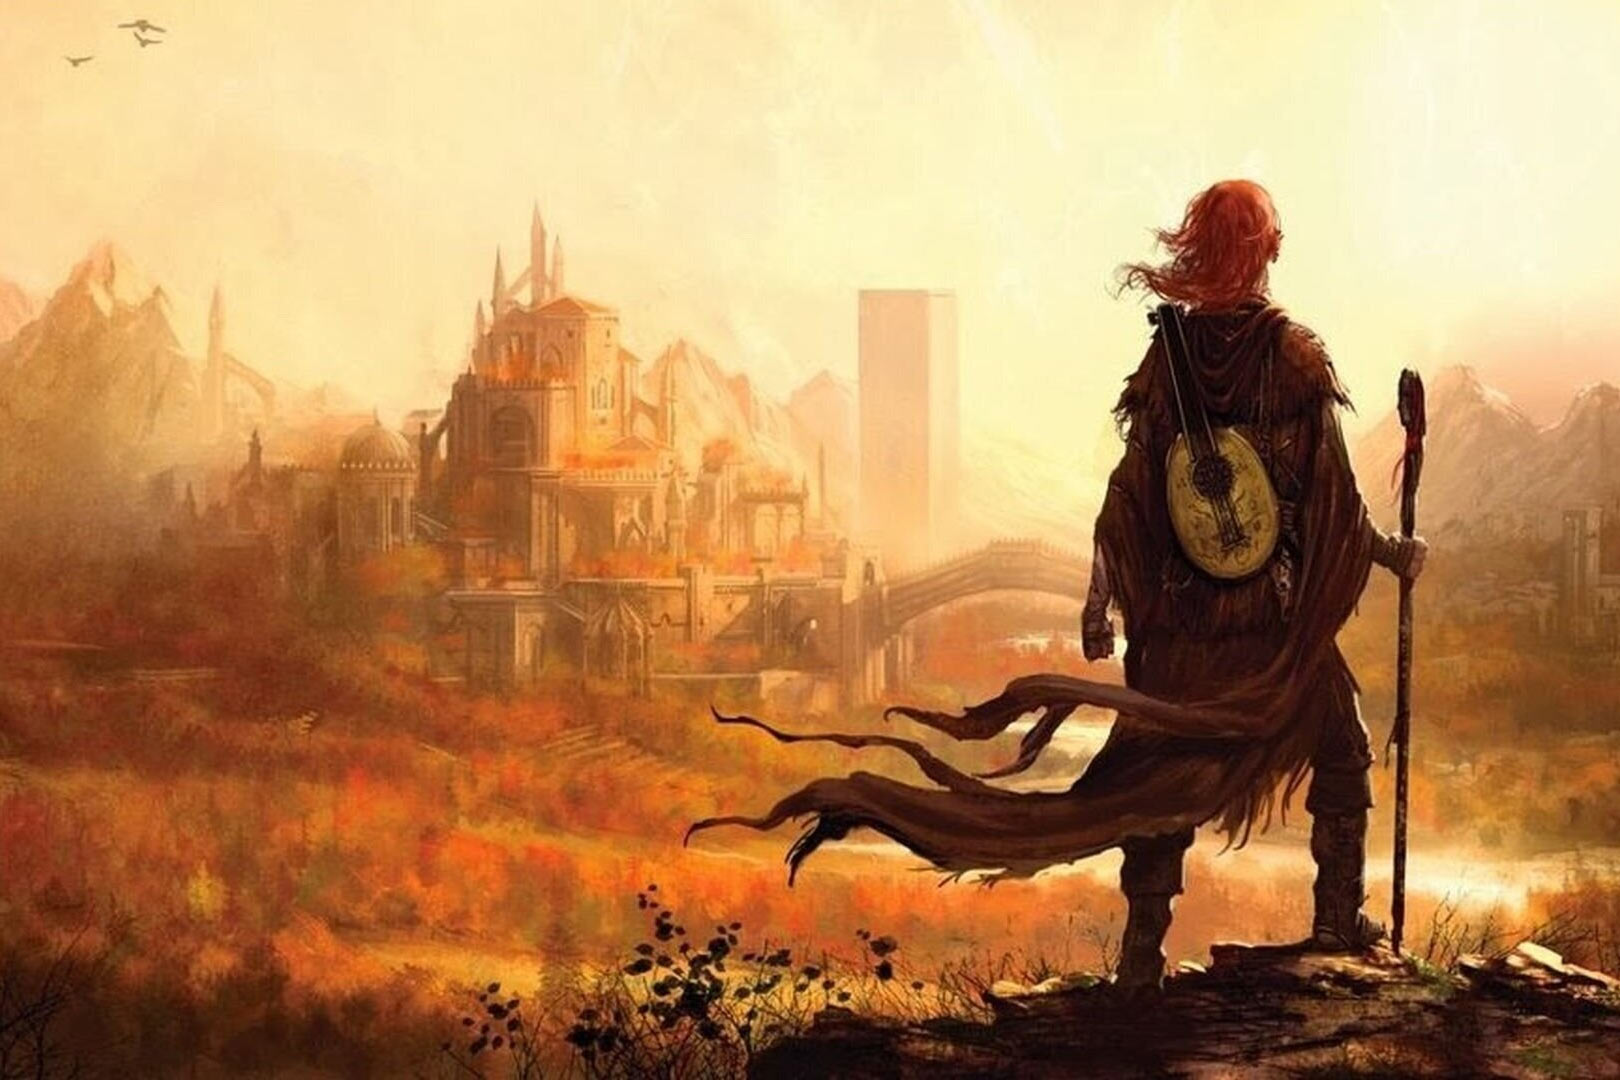 The Kingkiller Chronicle Series: In what order to read Patrick Rothfuss's books?